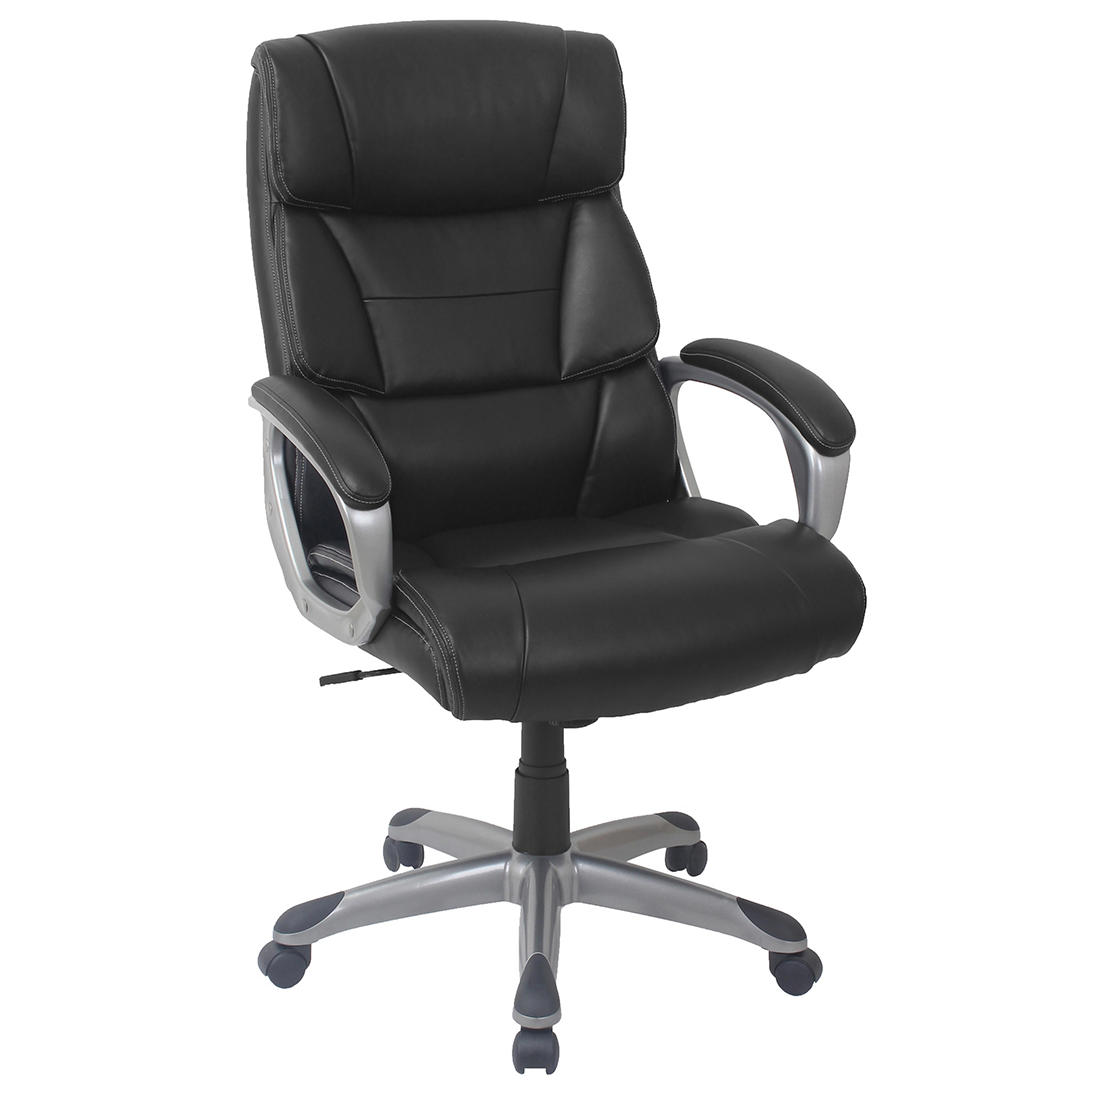 Black Leather Accent Chairs For Bariatric.Berkley Jensen Bonded Leather Manager Chair Black Gray